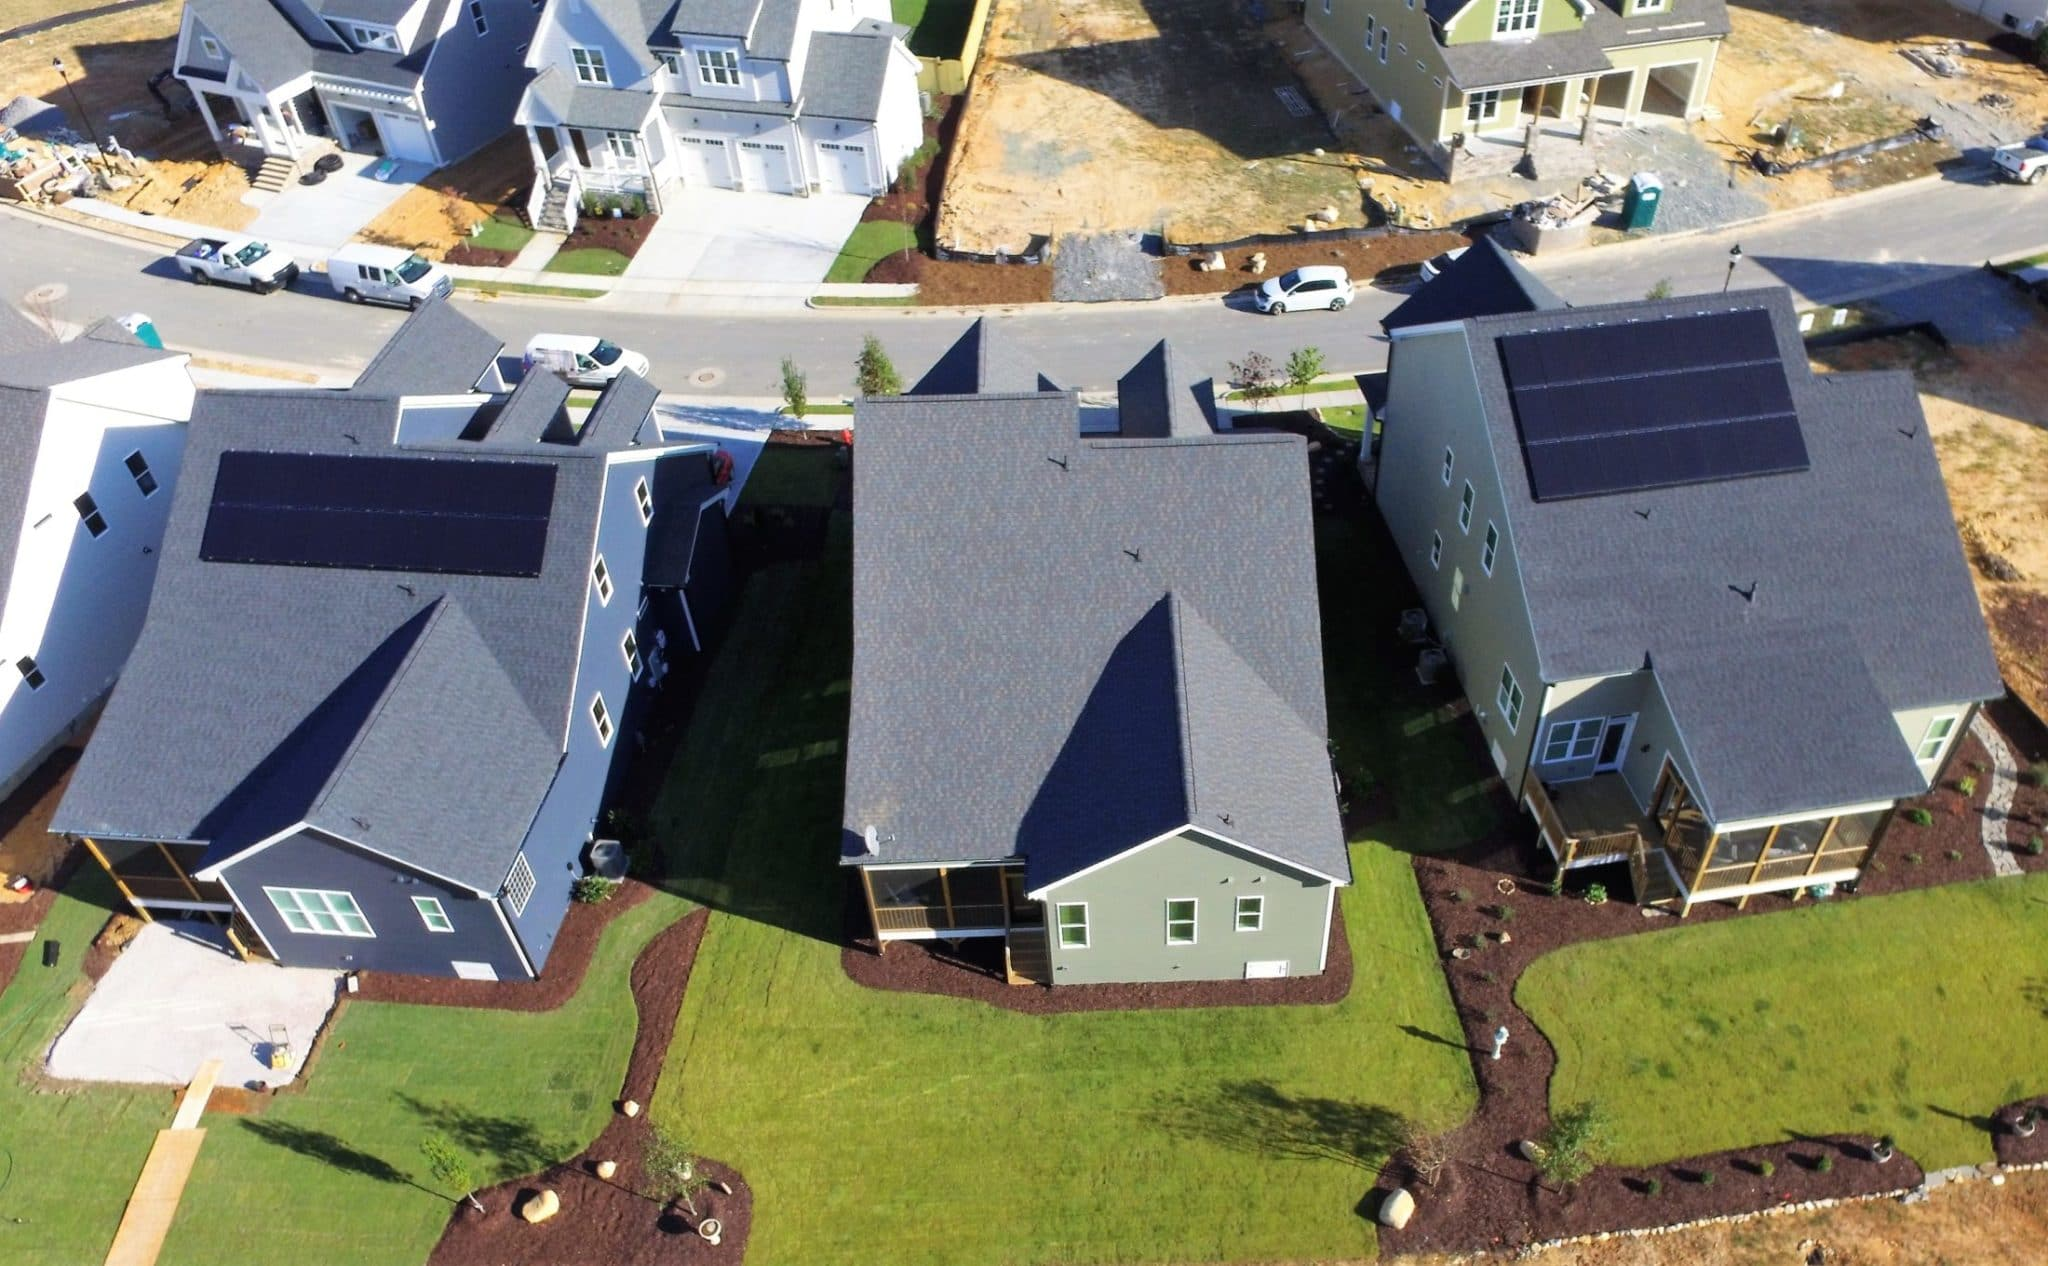 Neighborhood street with two homes with solar